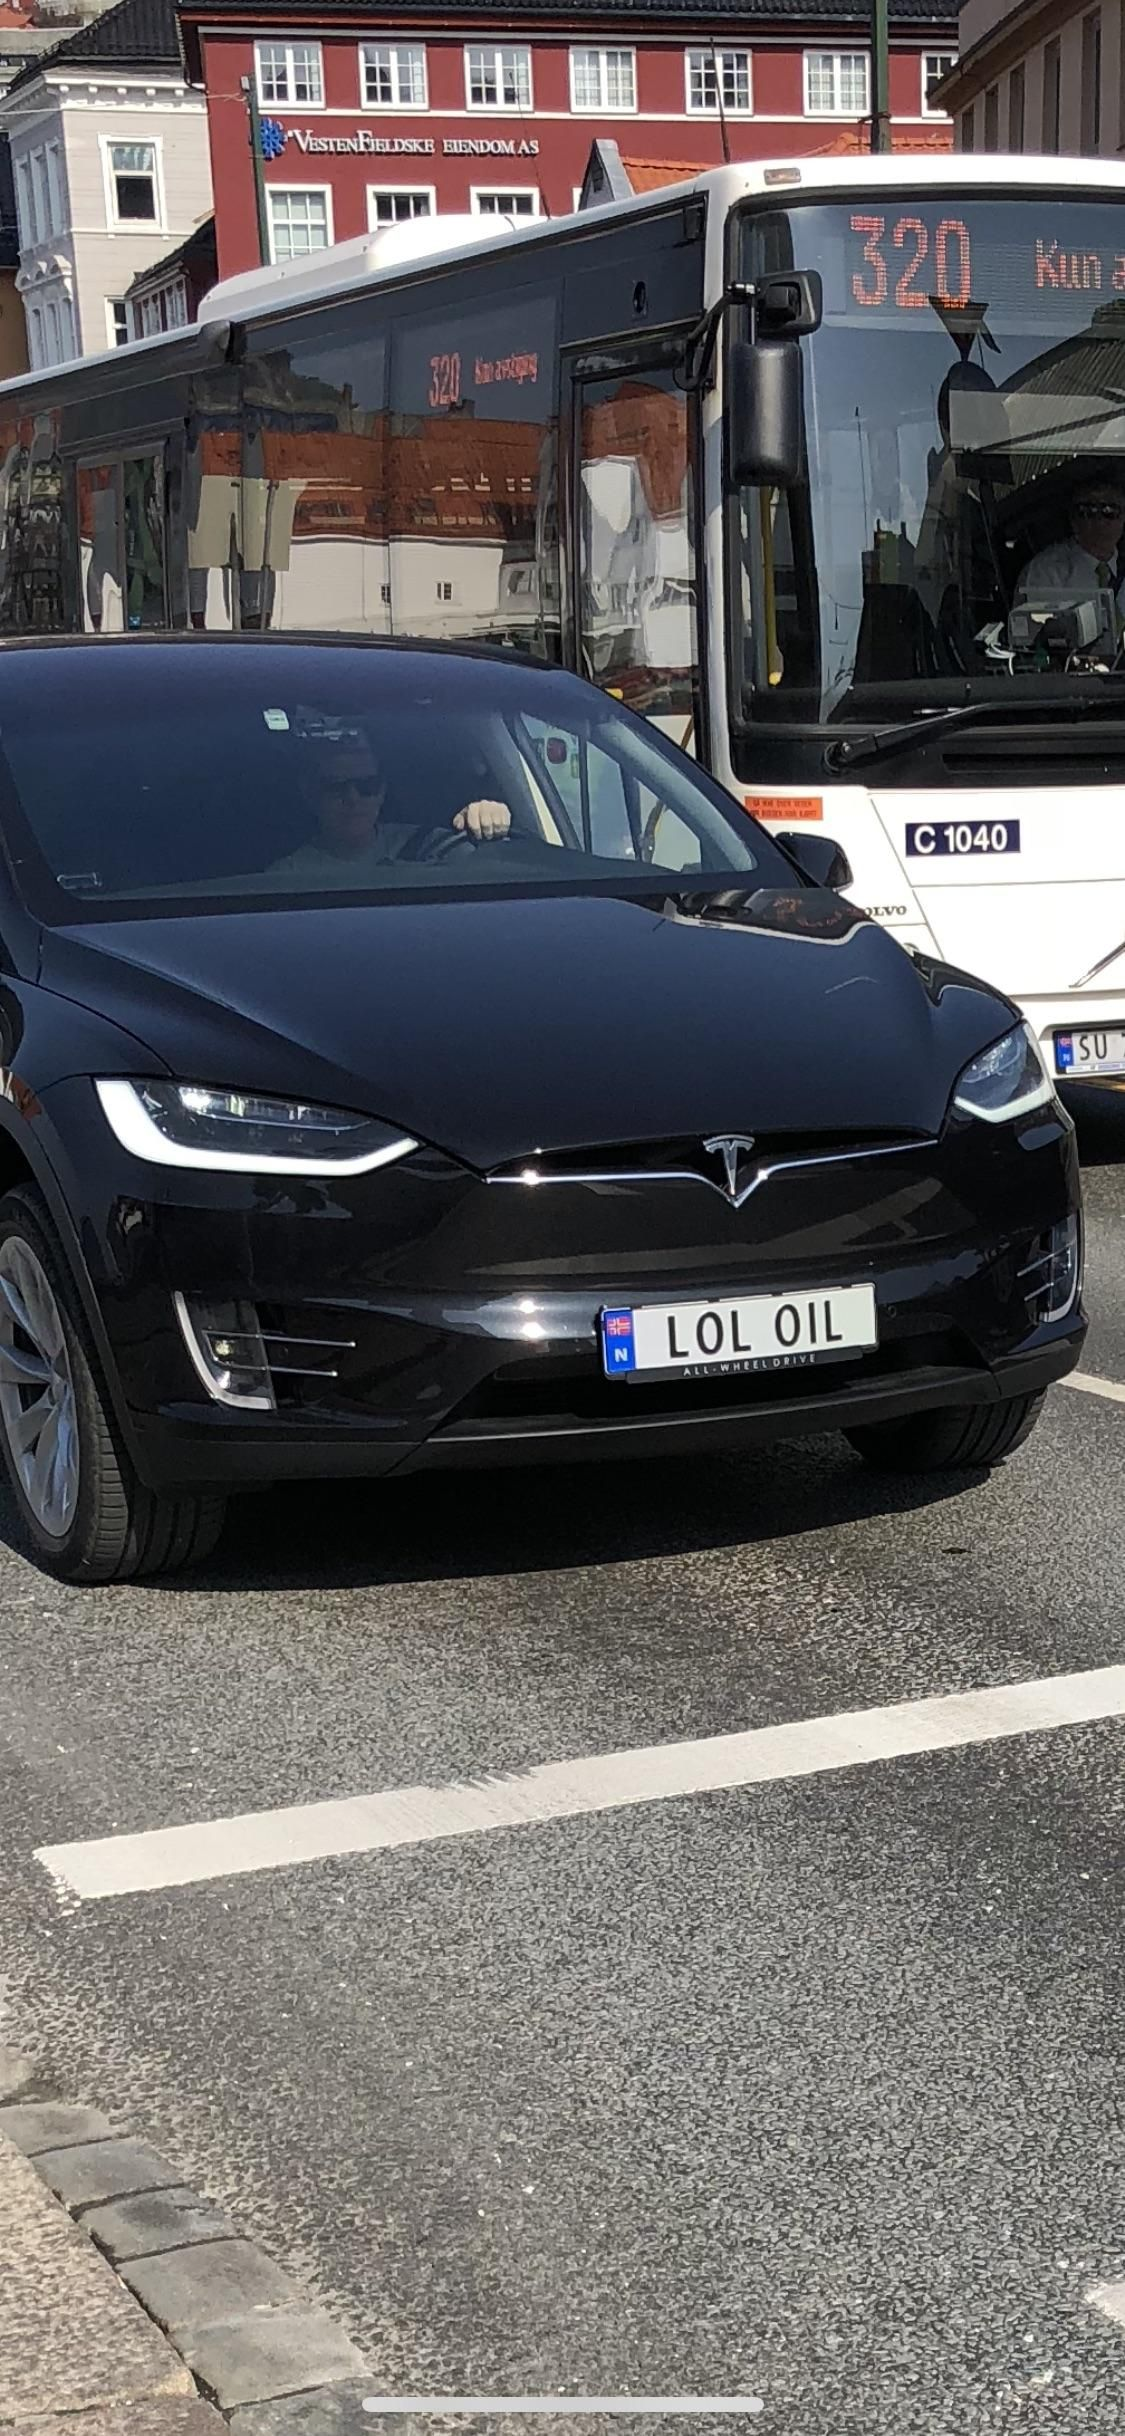 This license plate on a Tesla